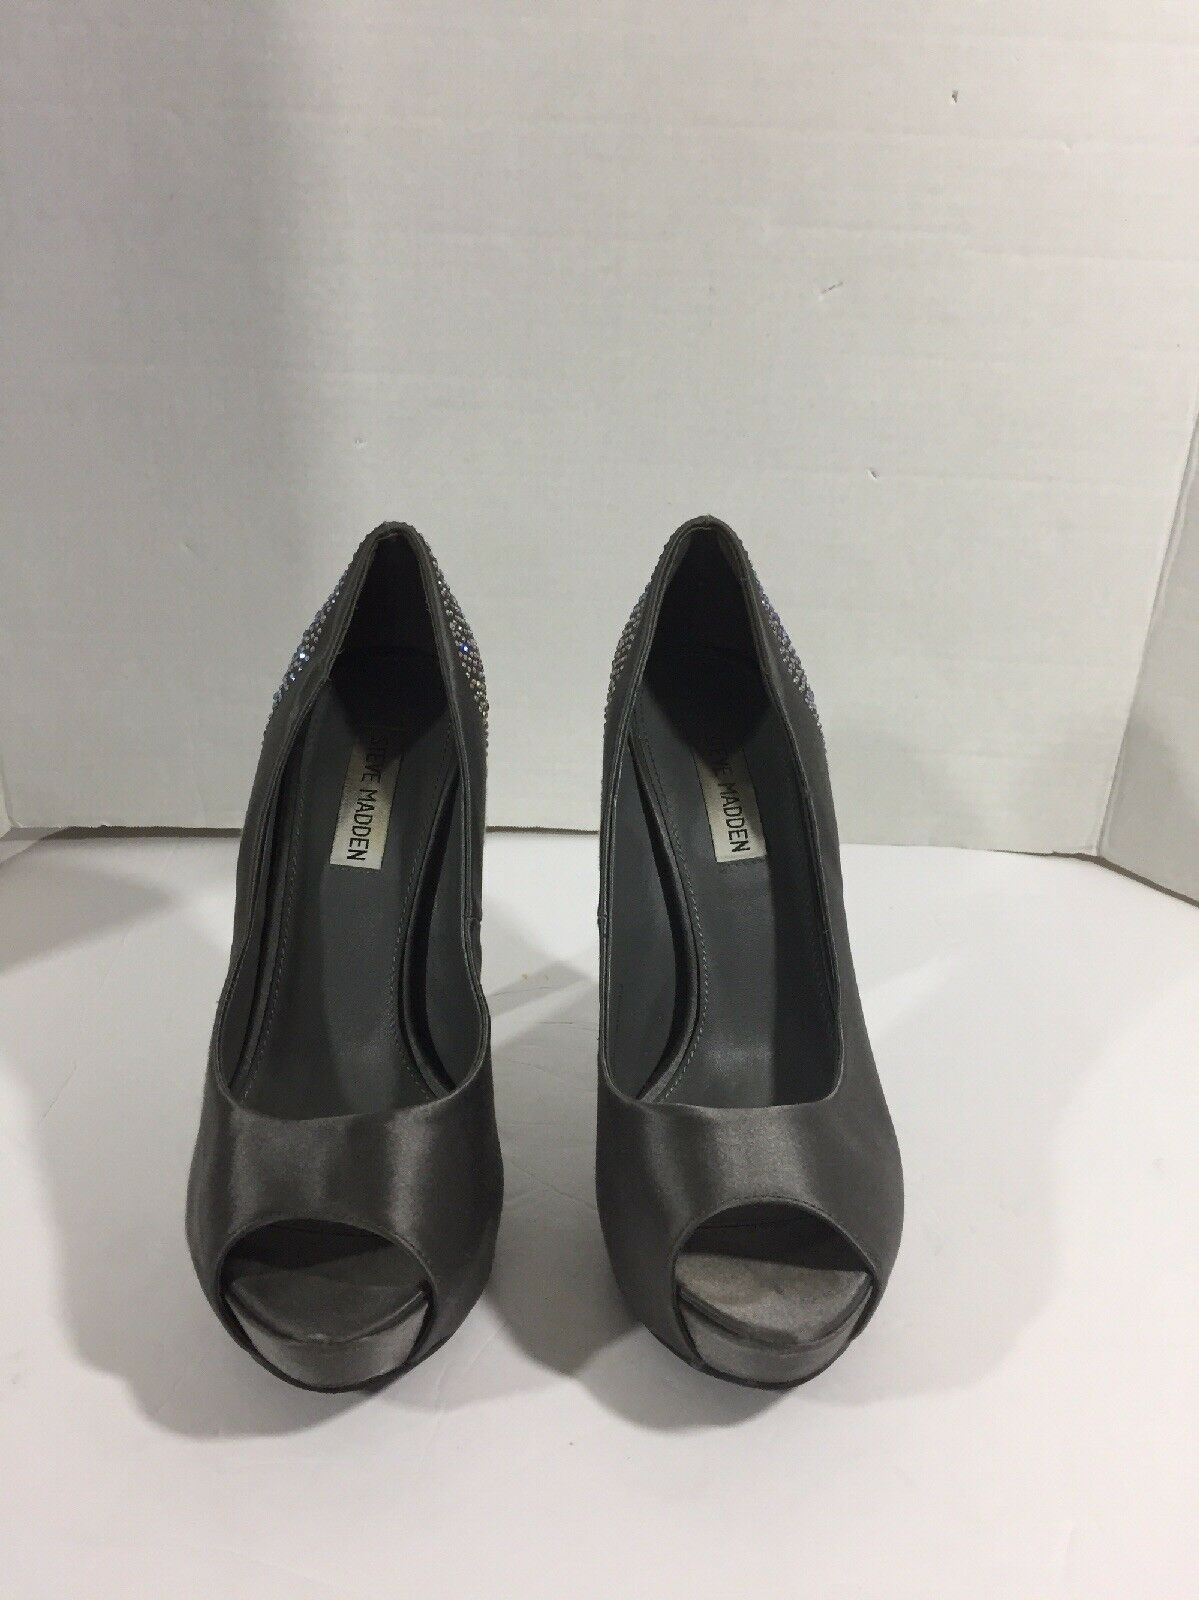 Steve Madden Shoes Women's Gray Sequin Shoes Madden Size 8 M 908cf3